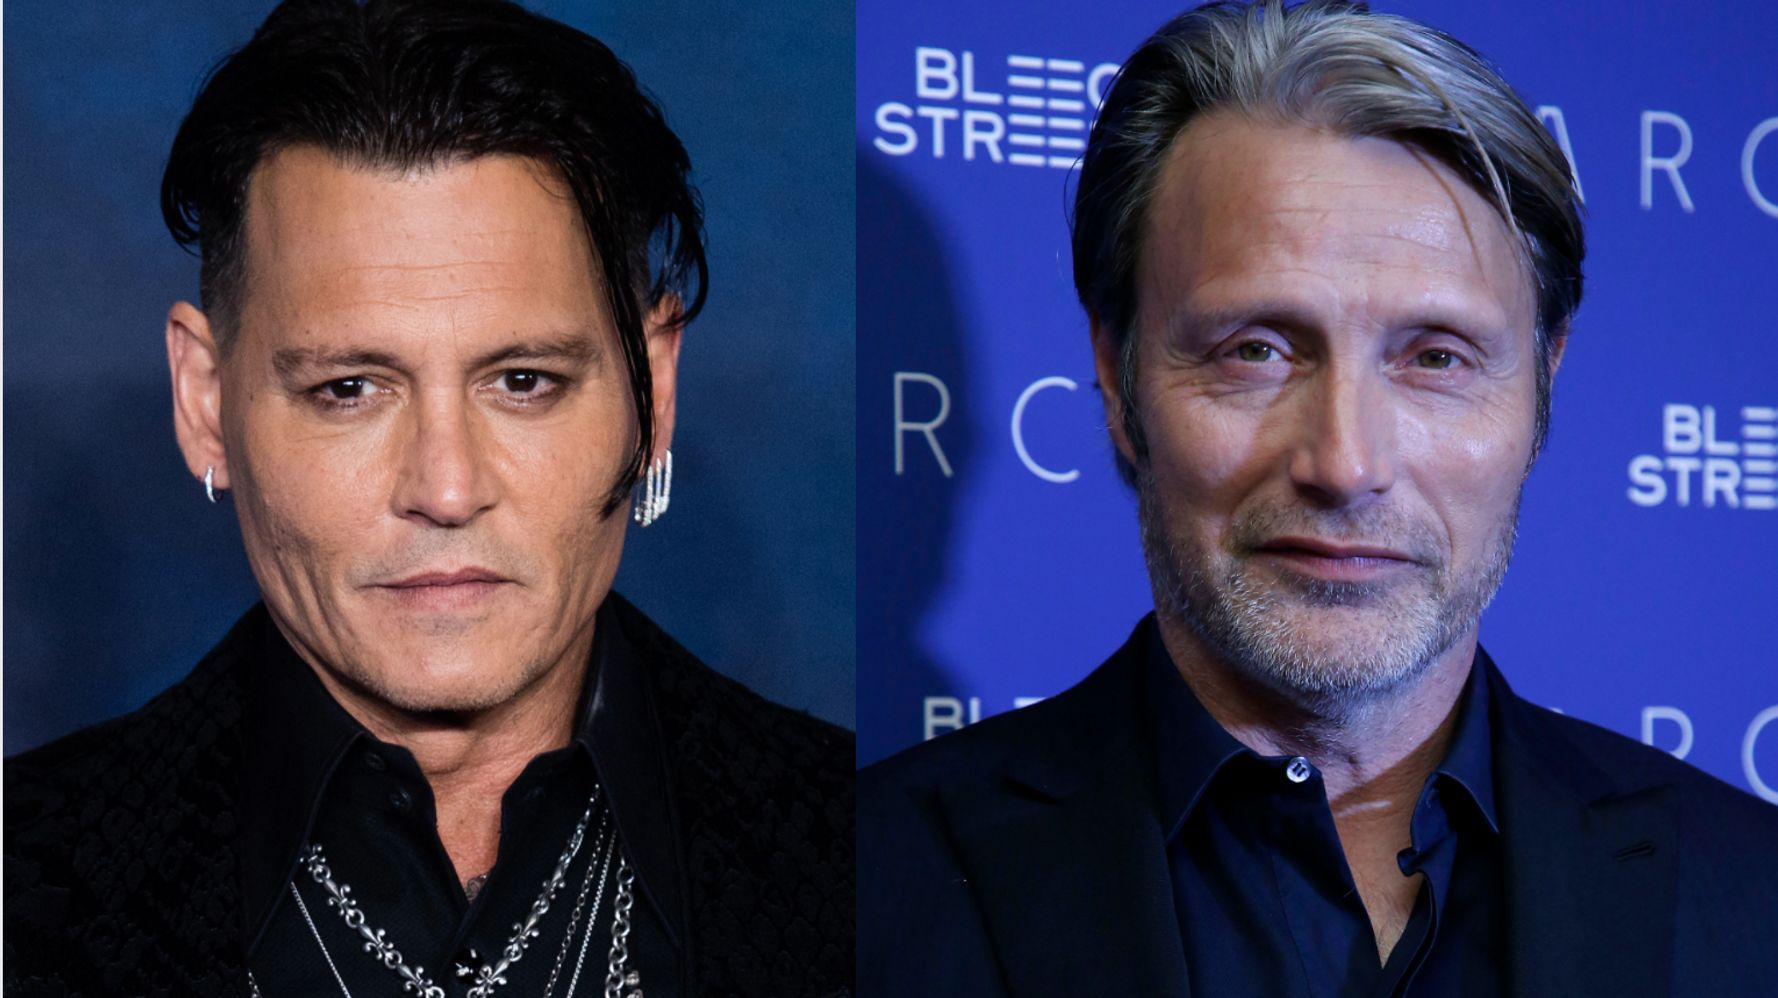 'Fantastic Beasts' Set To Recast Johnny Depp With This Actor, And We're Not 'Mads' About It